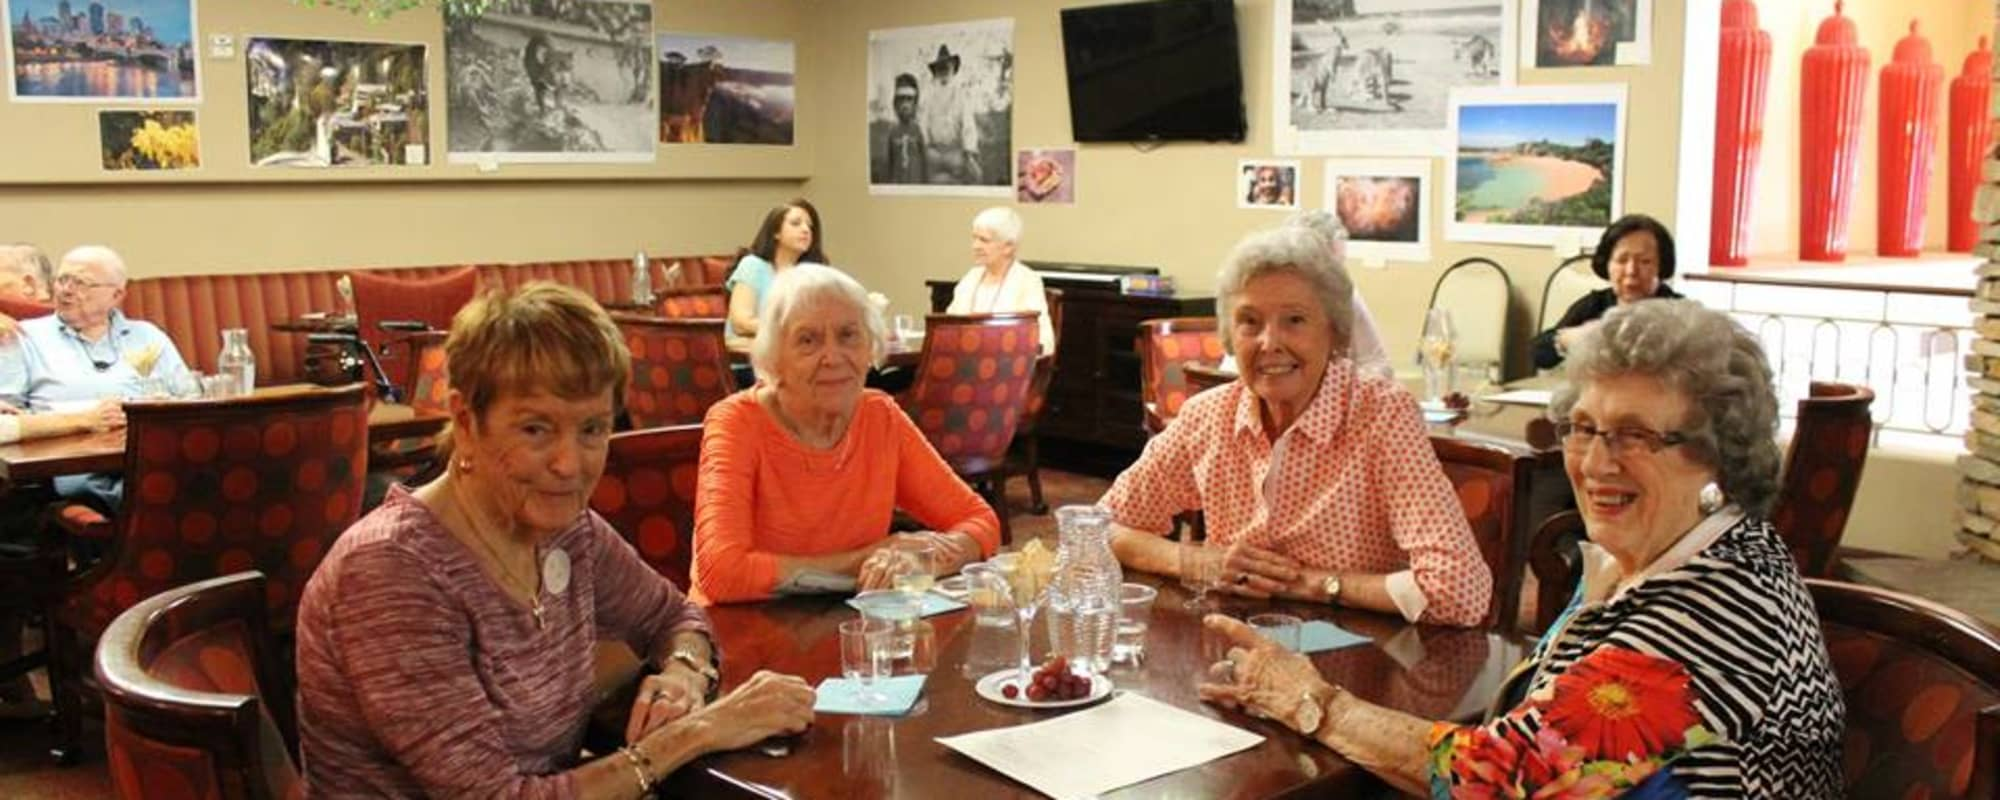 Seniors enjoying dinner at McDowell Village in Scottsdale, Arizona